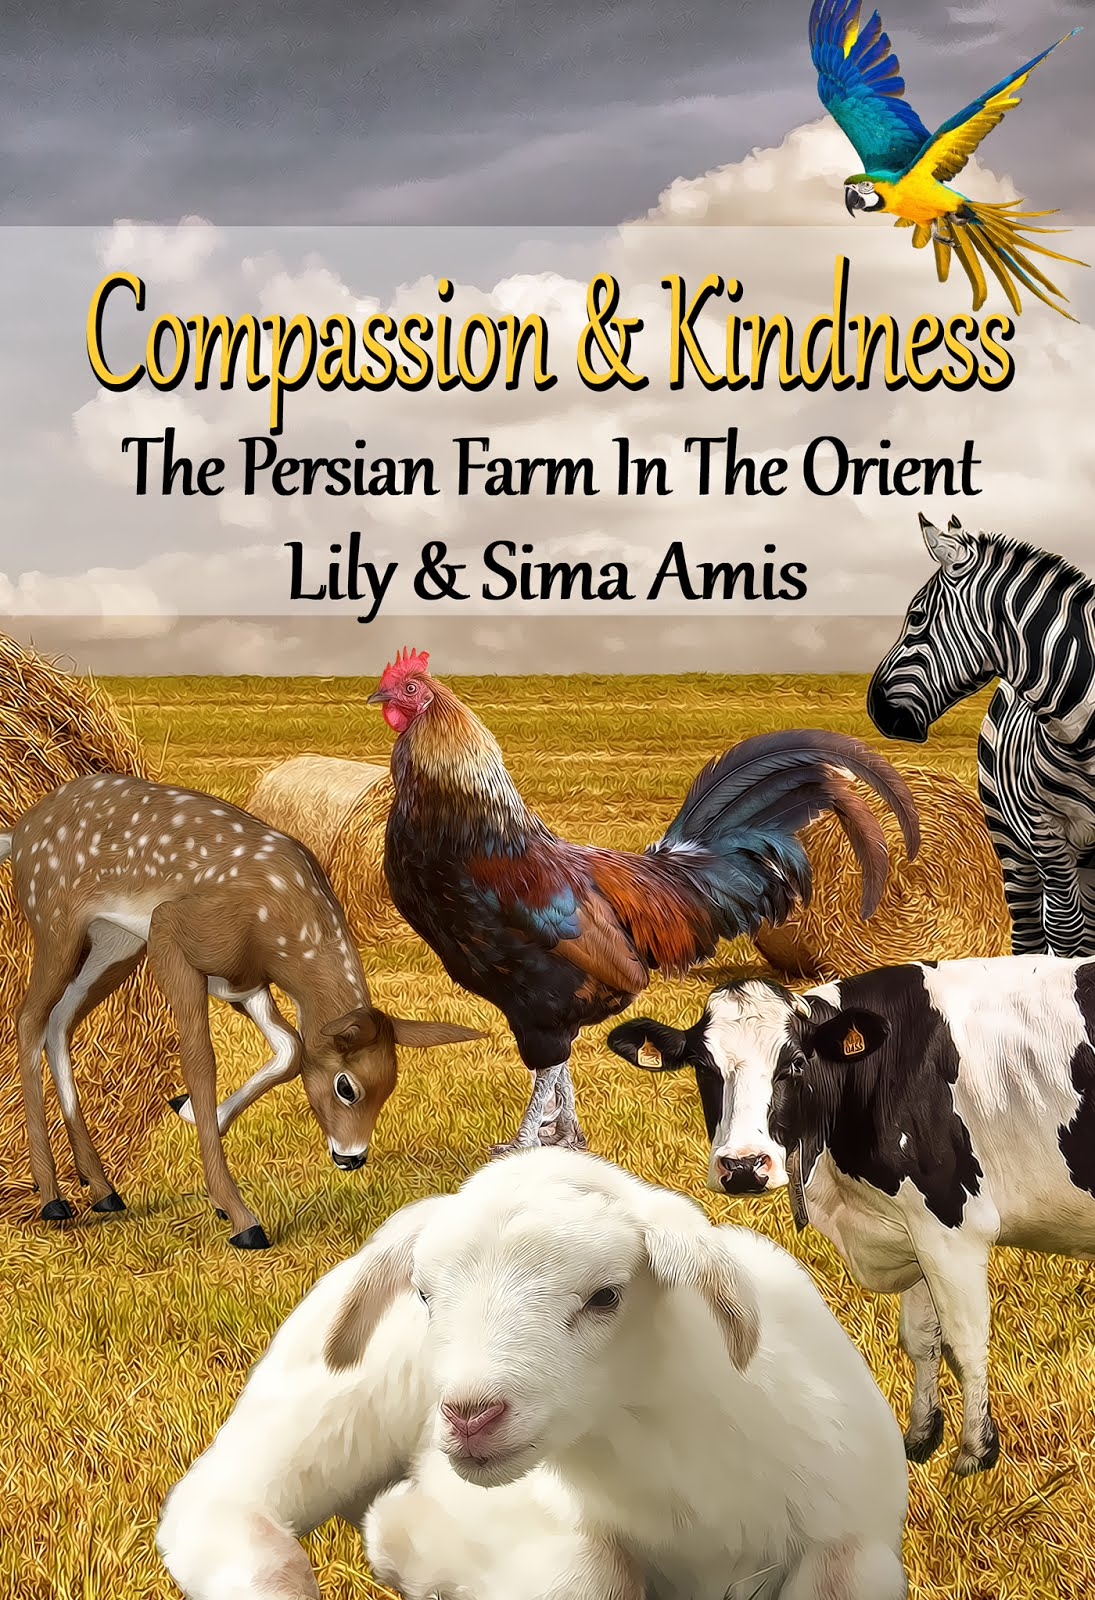 COMPASSION & KINDNESS